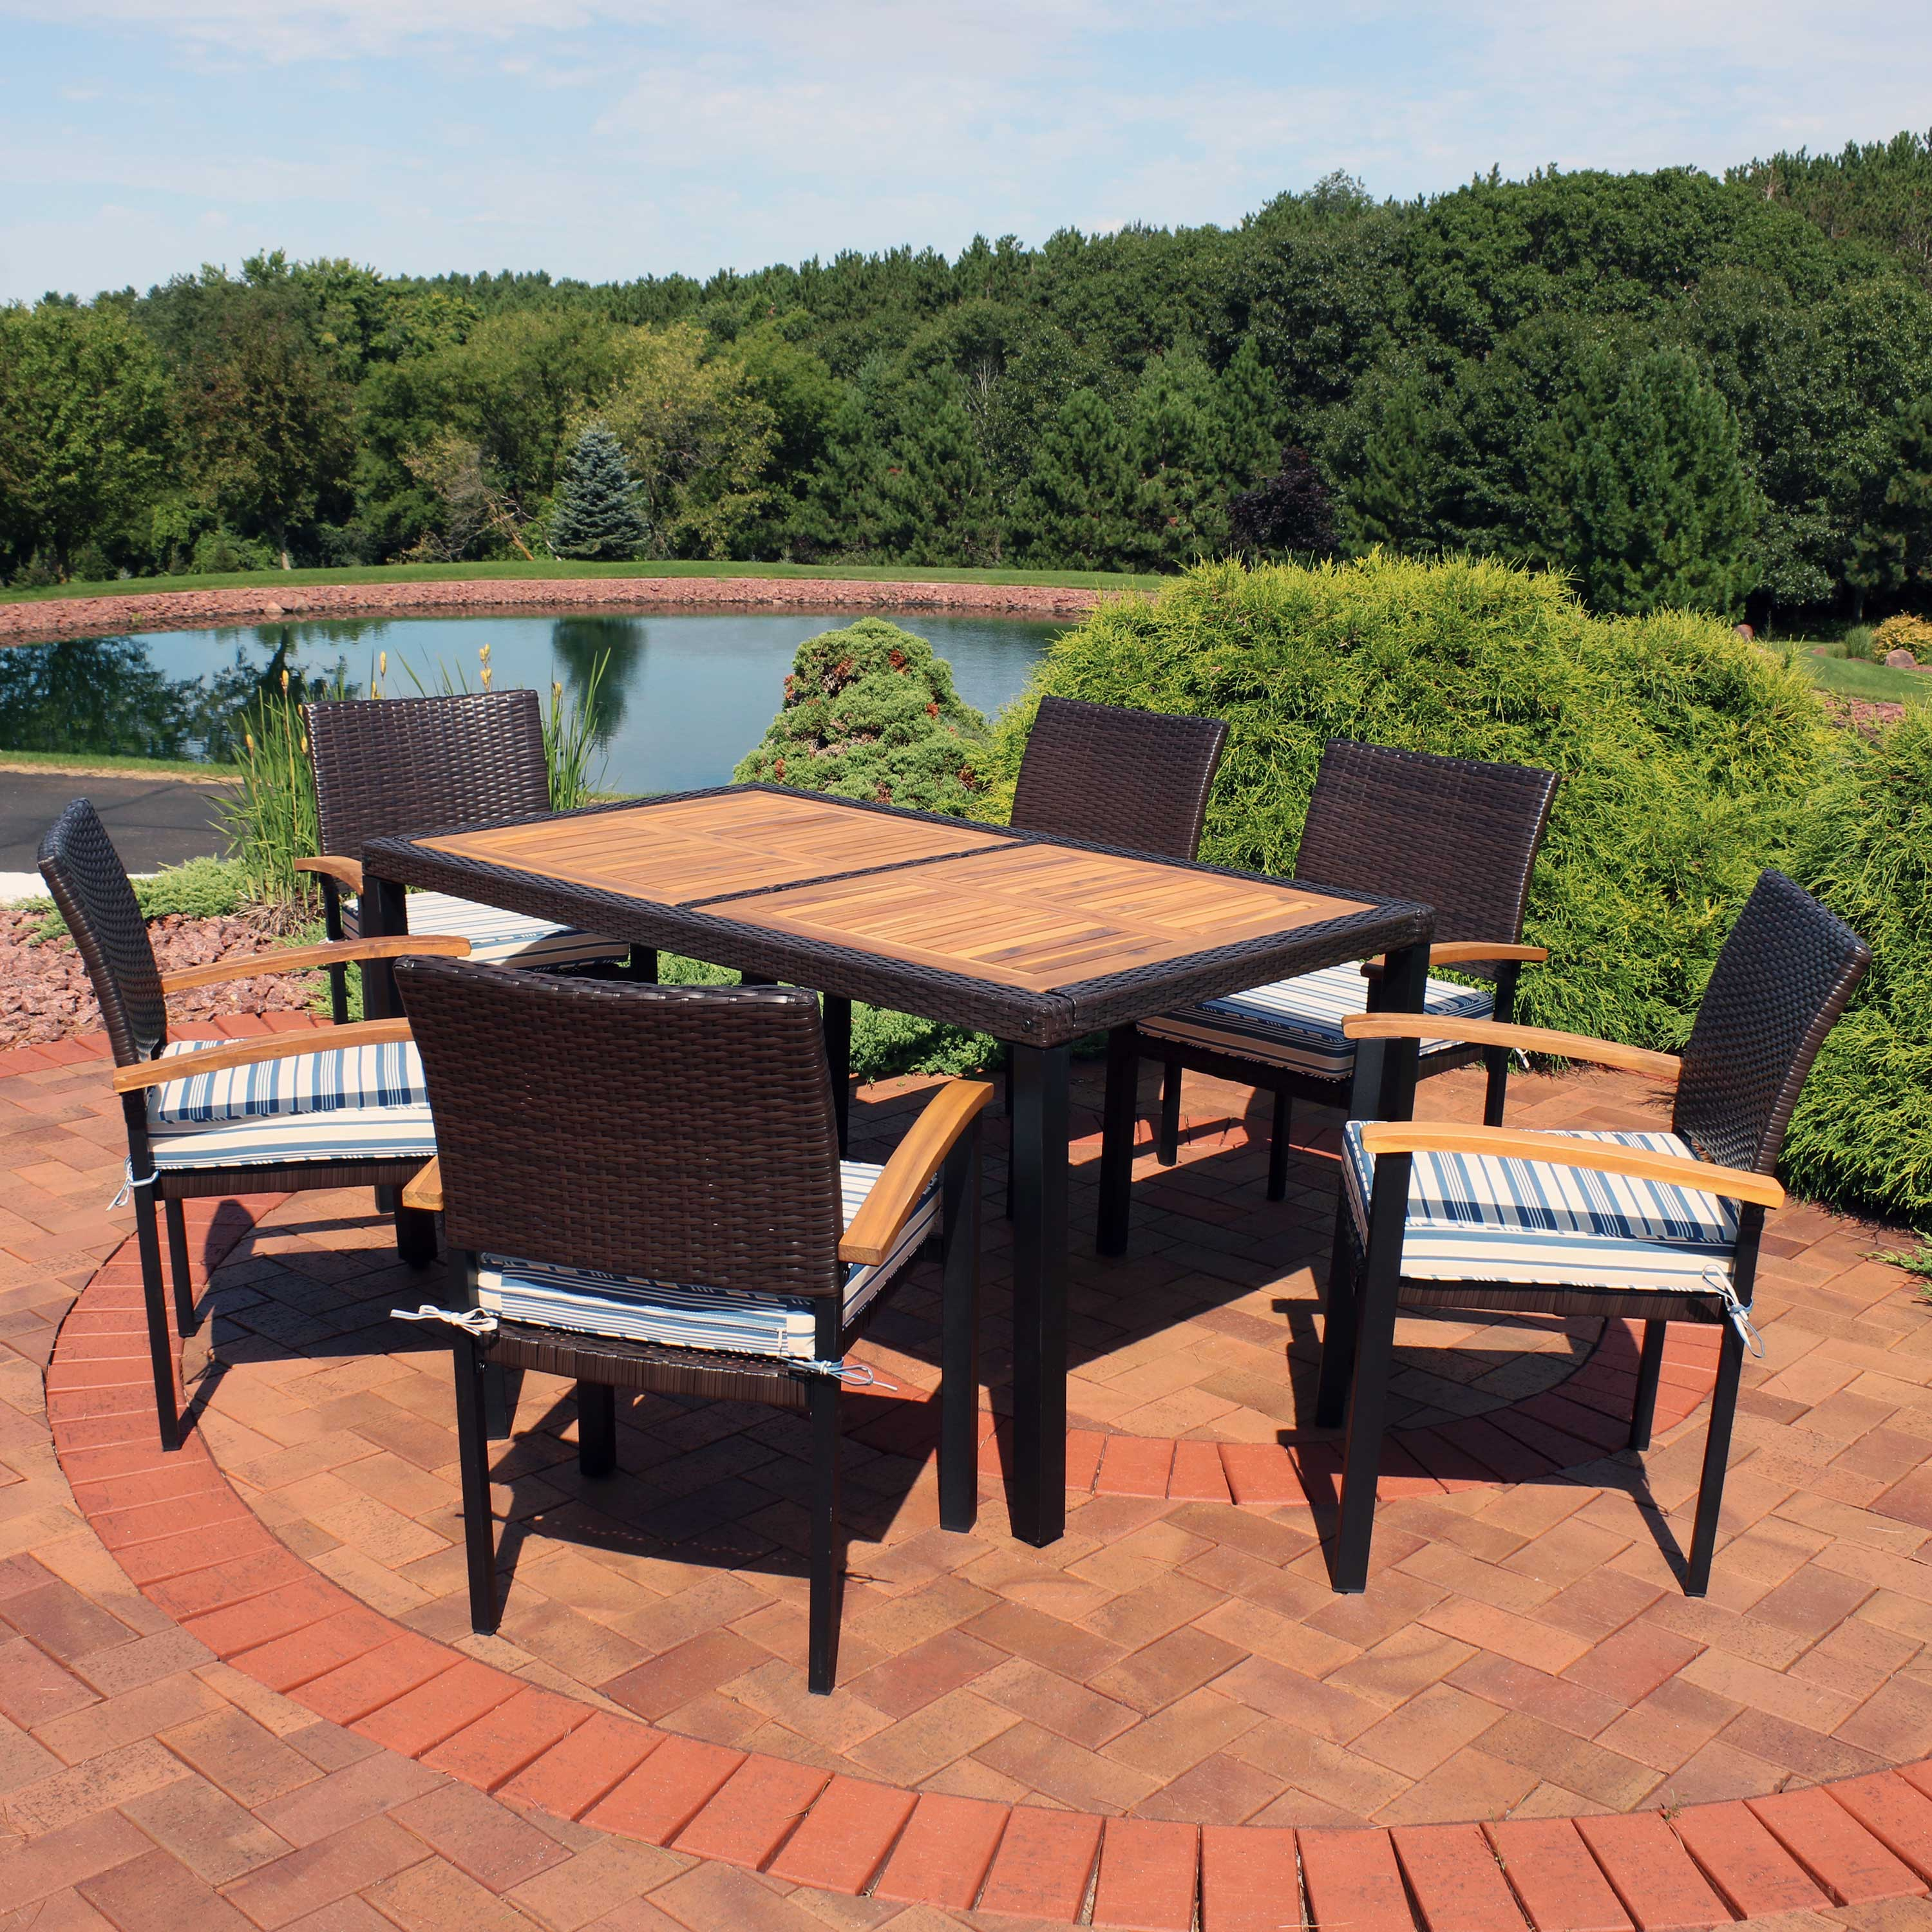 sunnydaze carlow outdoor dining set 7 piece rattan and acacia outside patio furniture 1 table and 6 chairs with thick seat cushions multiple